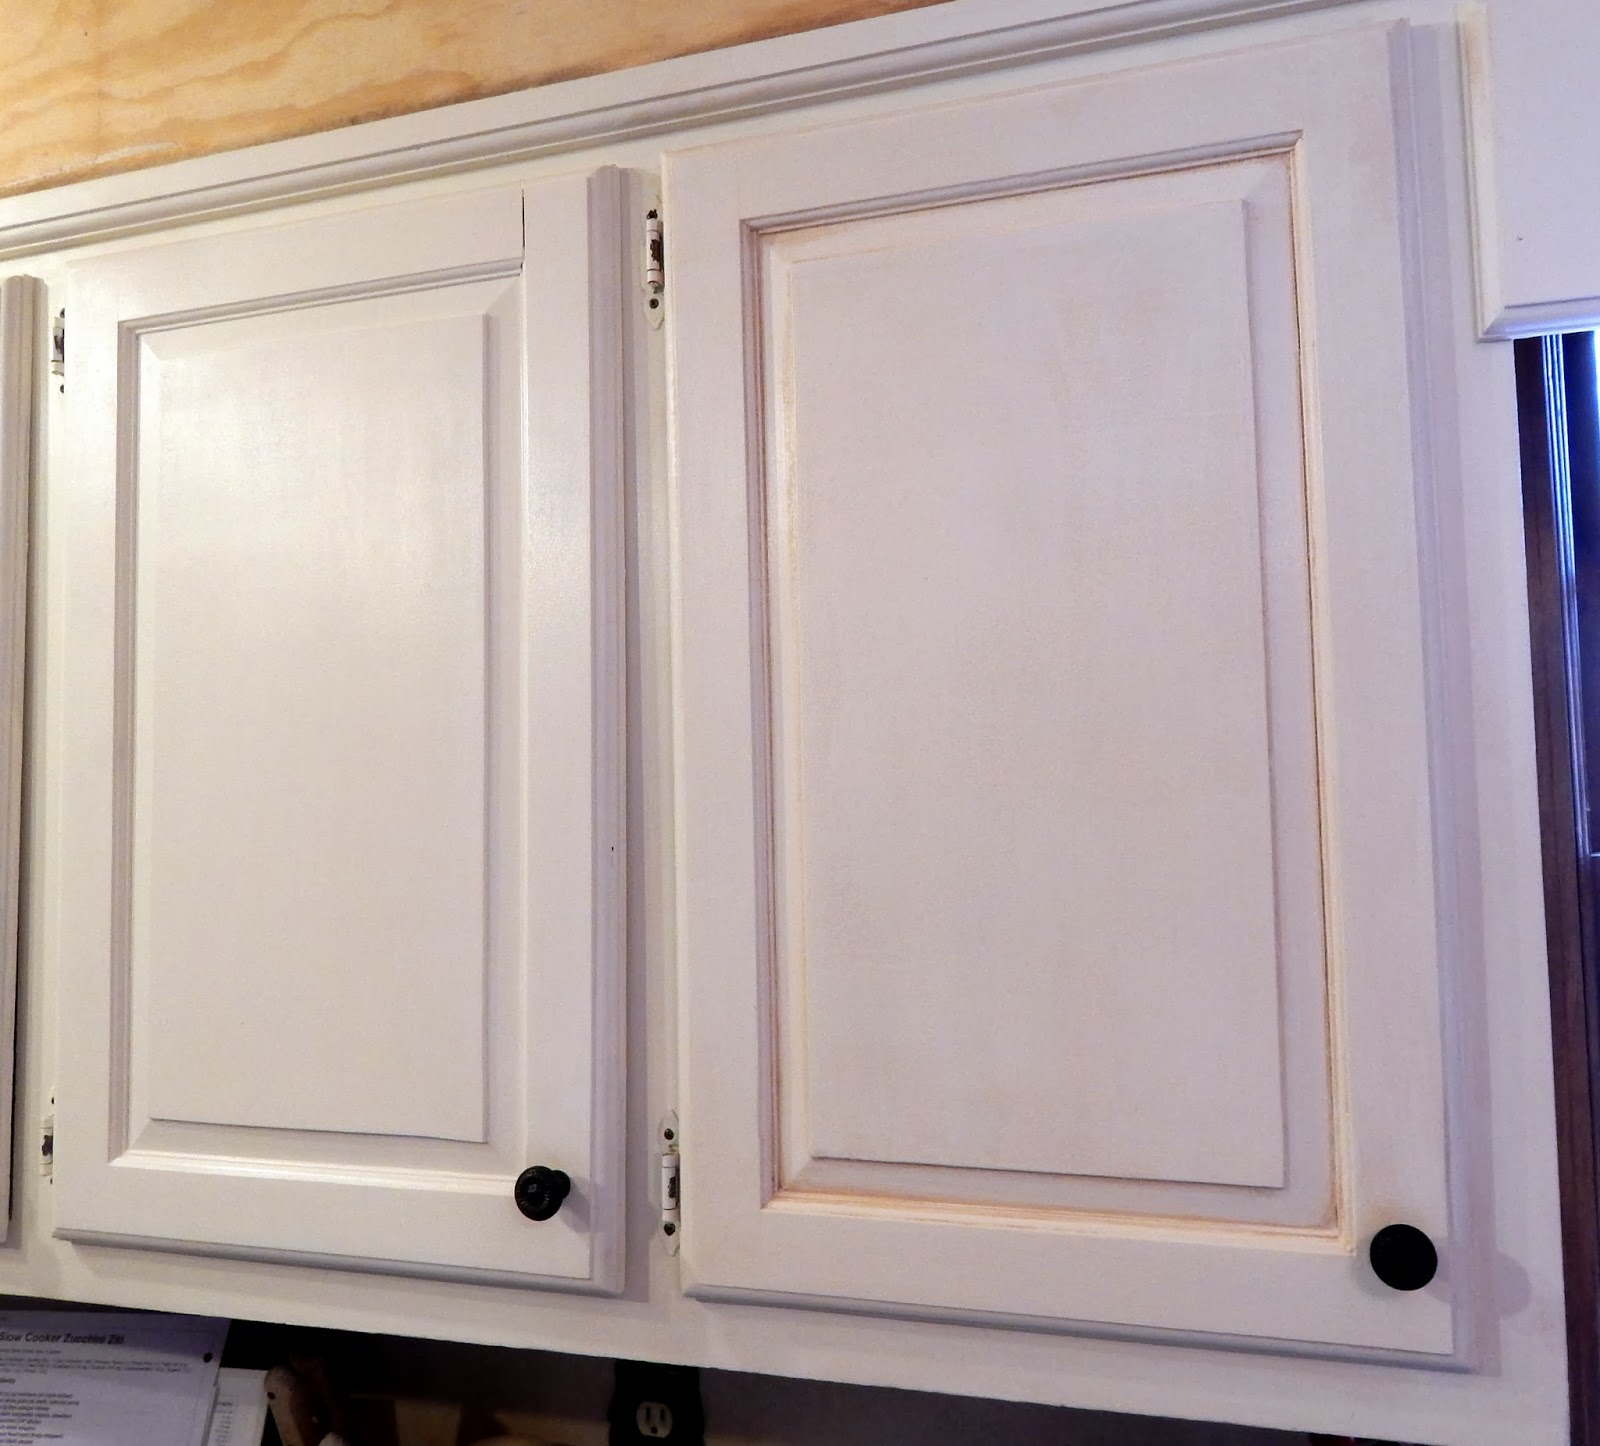 The Bluestocking Belle: Waxing and Glazing the Kitchen Cabinets